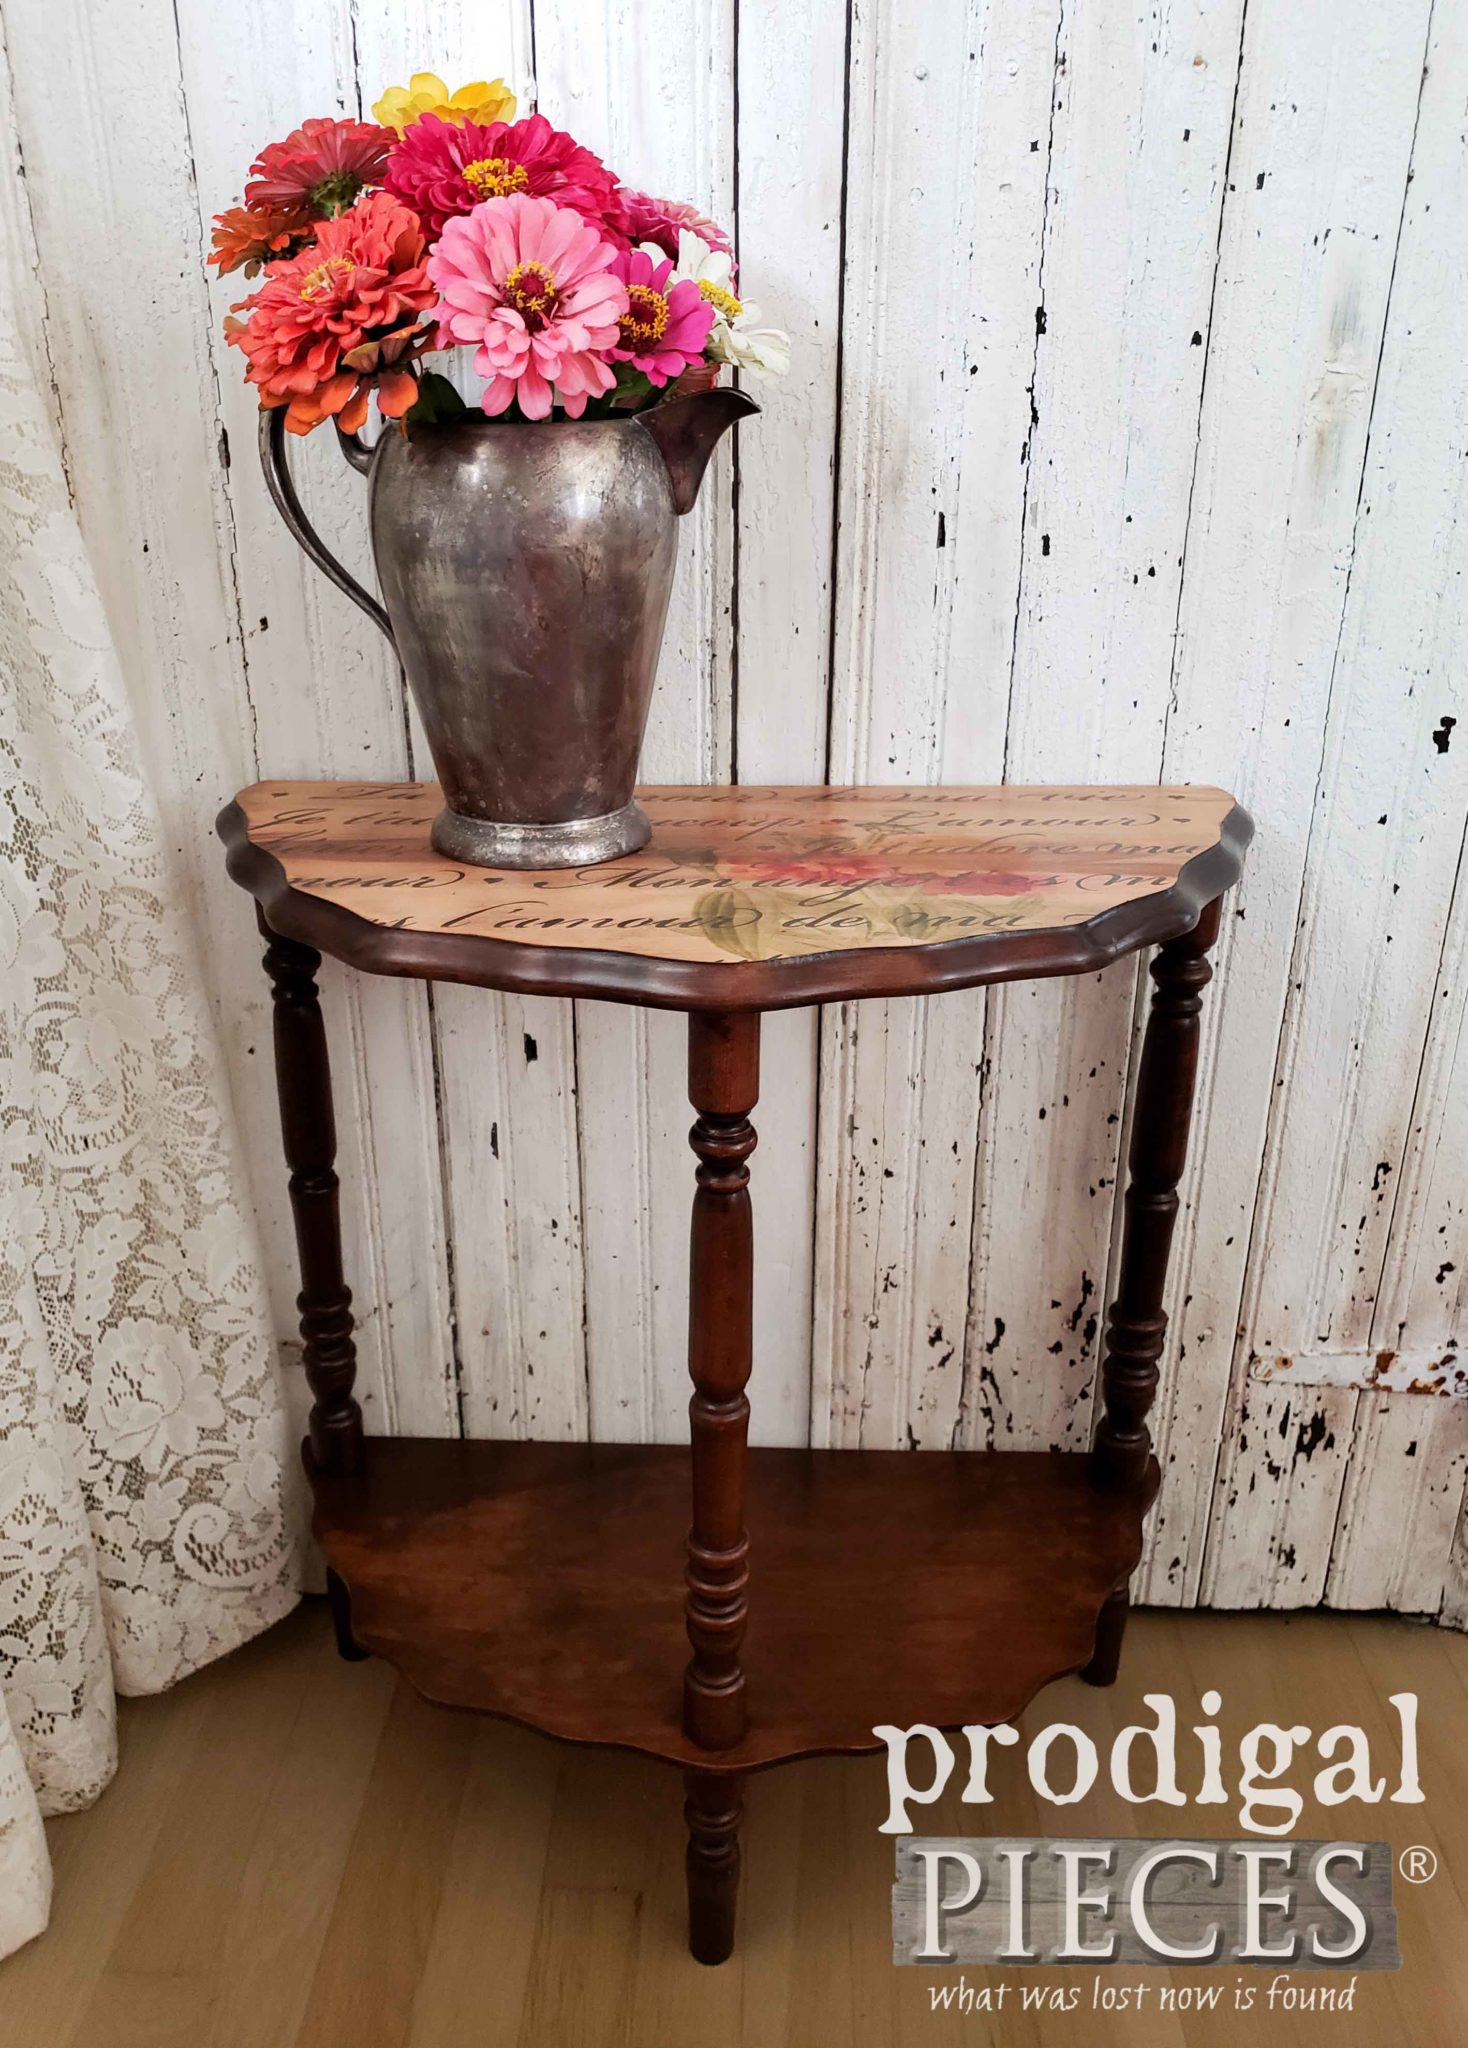 This small side table got a second chance to shine with some new stain and veneer table top